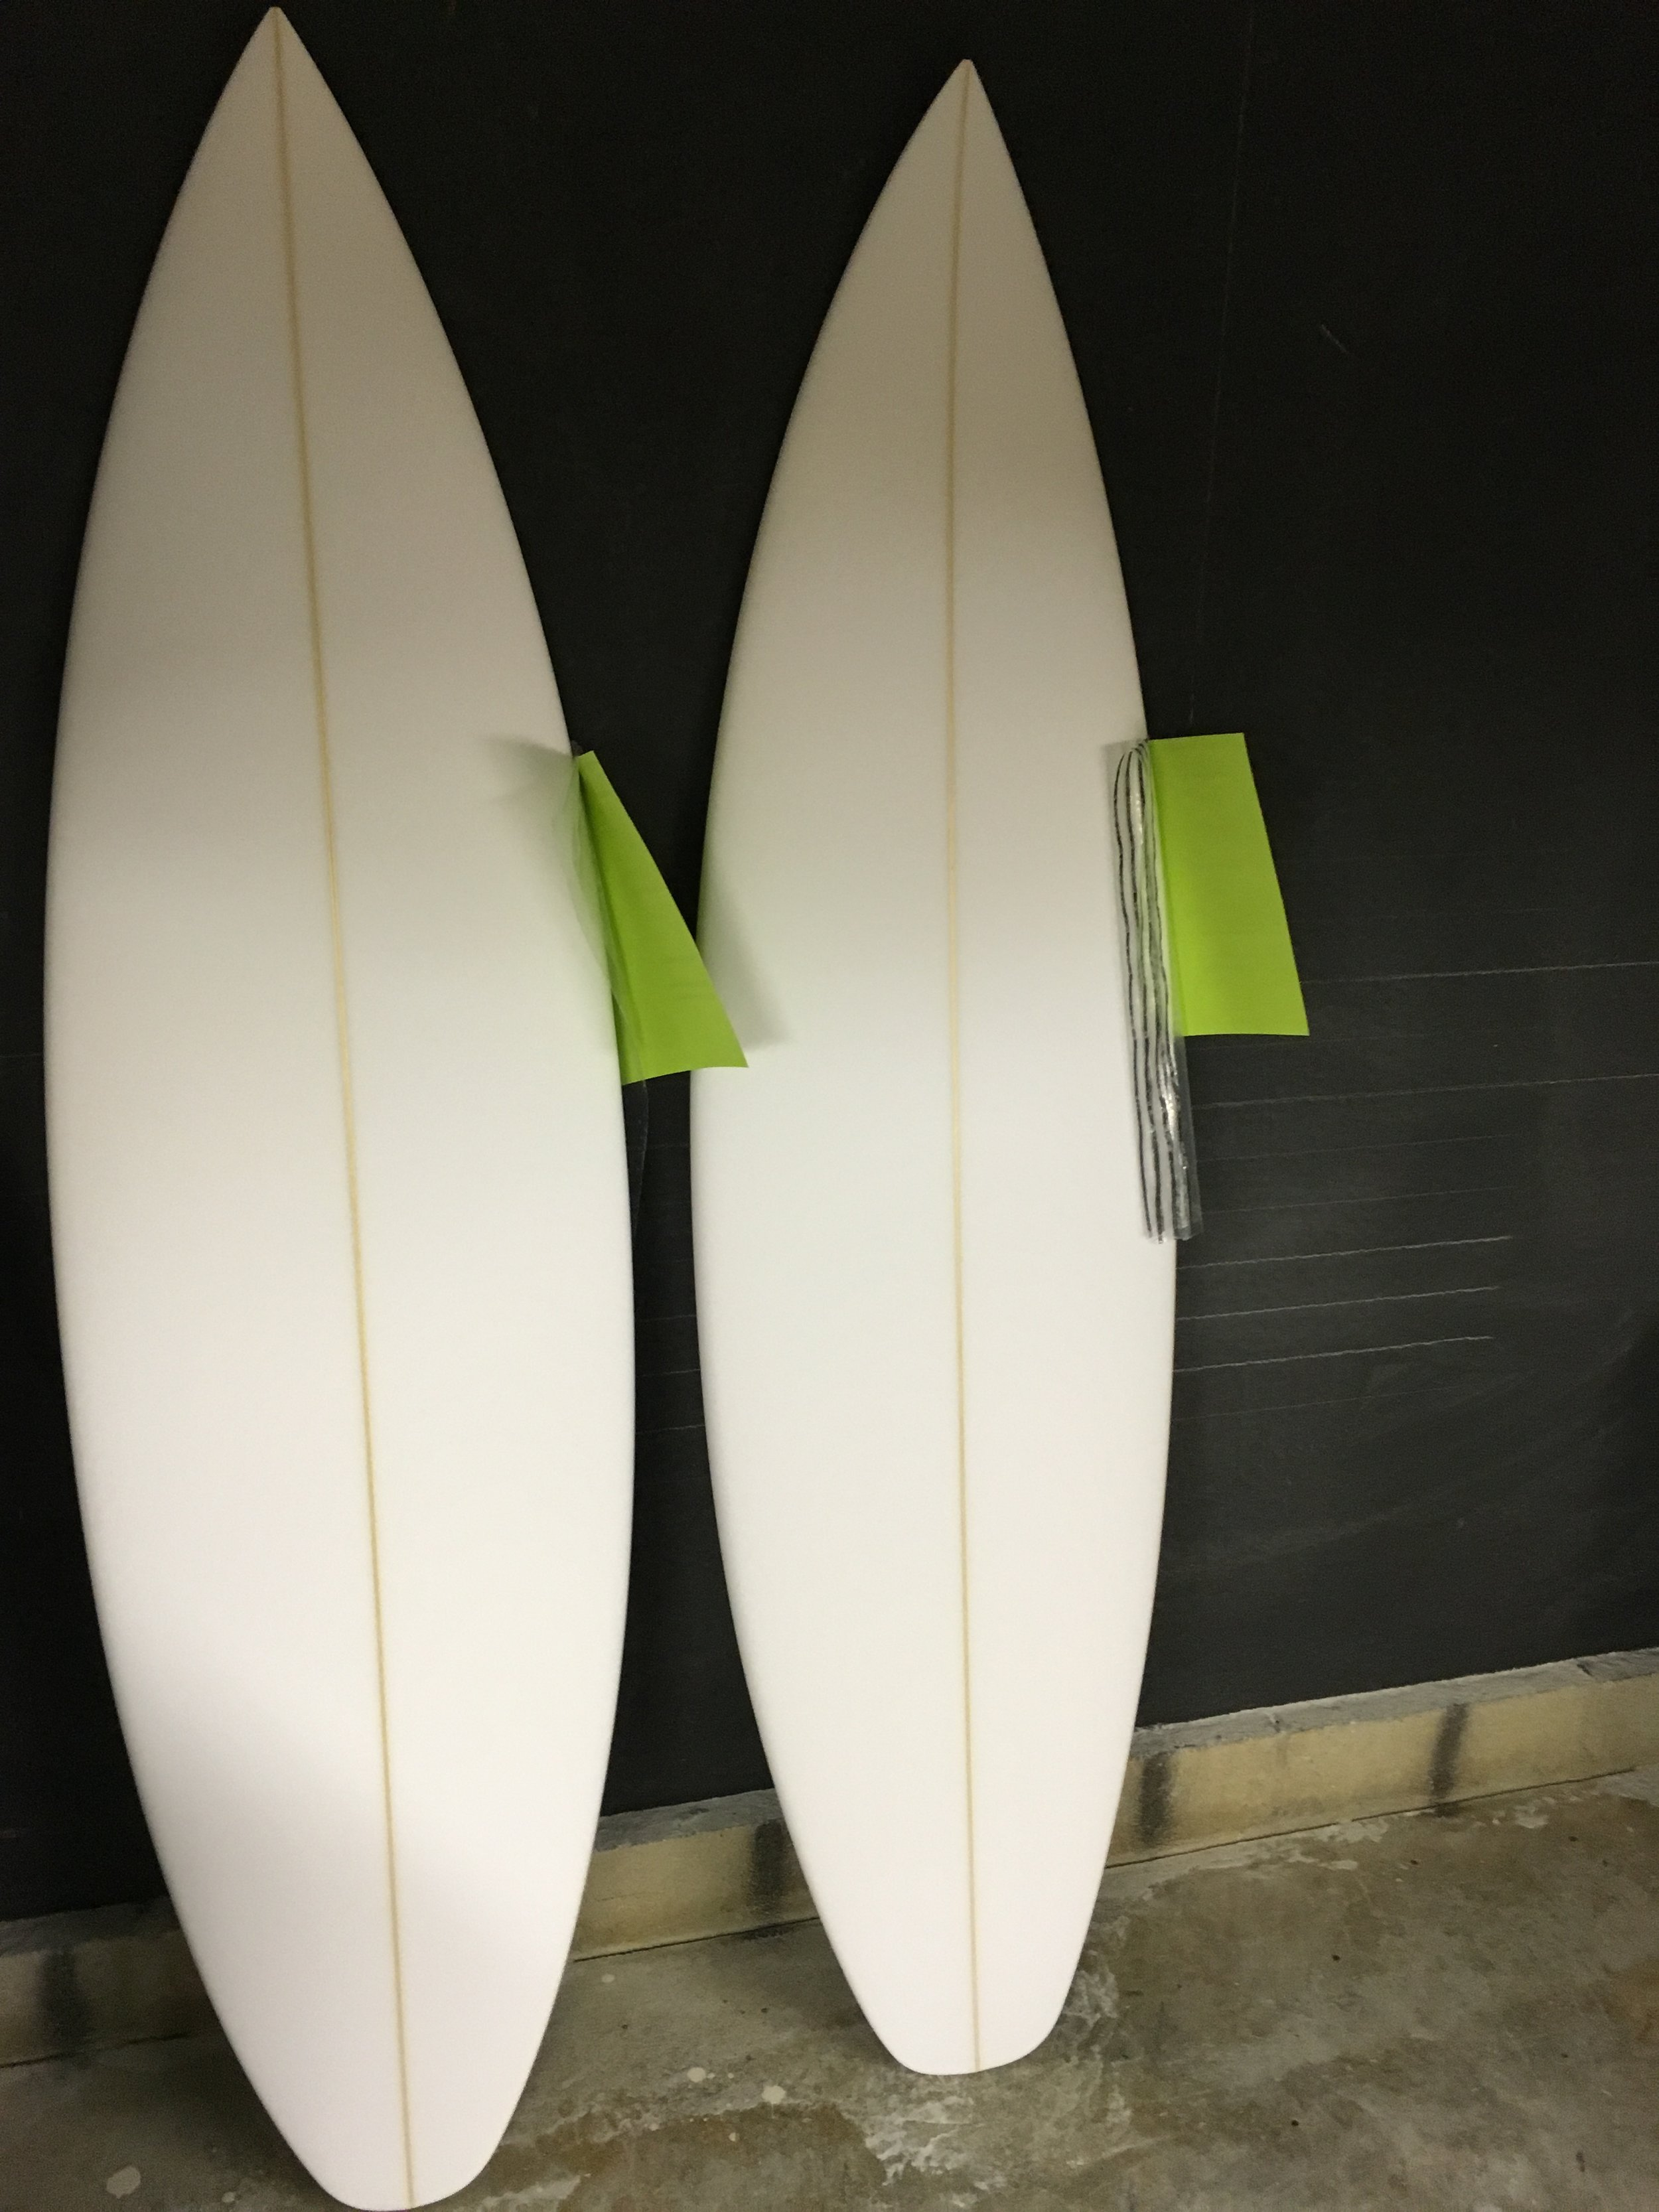 Some R and D boards. Small changes can make the difference . These 2 making changes in a 2 cm wide by 1/8 high area of foam.